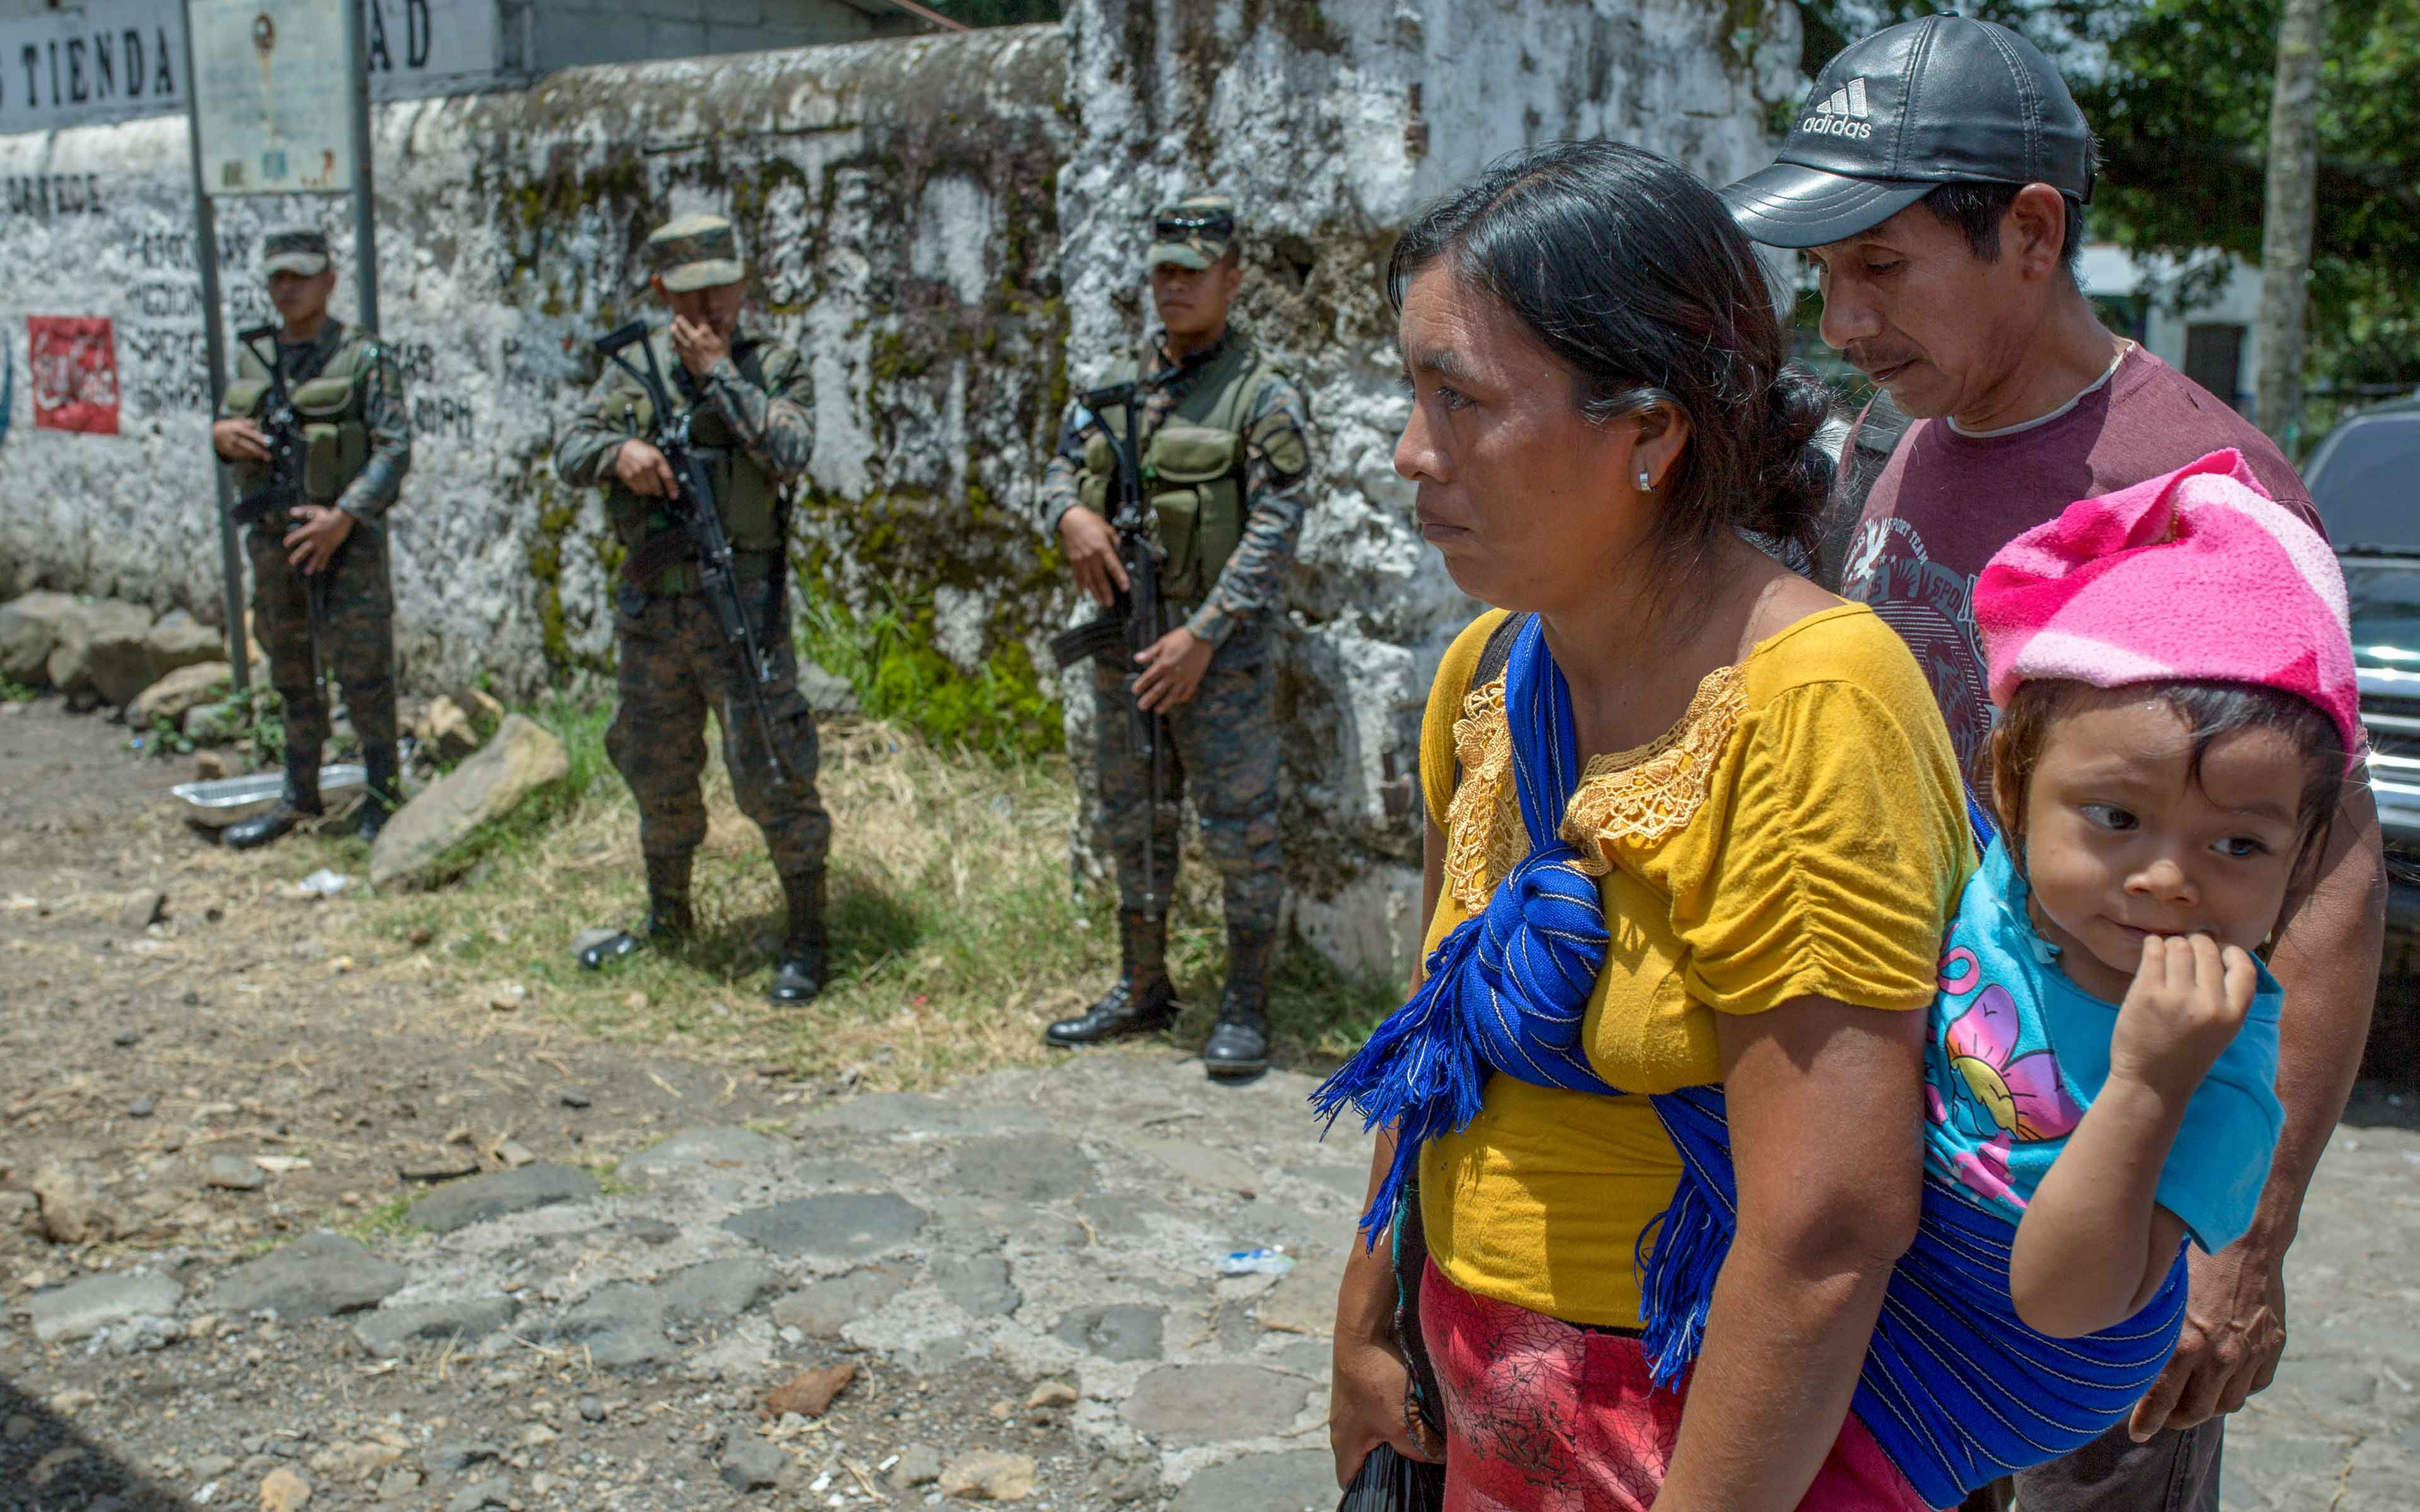 Many years after Guatemala's internal conflict, the same army that persecuted the ethnic Maya people in the western highlands is now carrying out a humanitarian mission to assist them in the evacuation of their new home in La Trinidad.